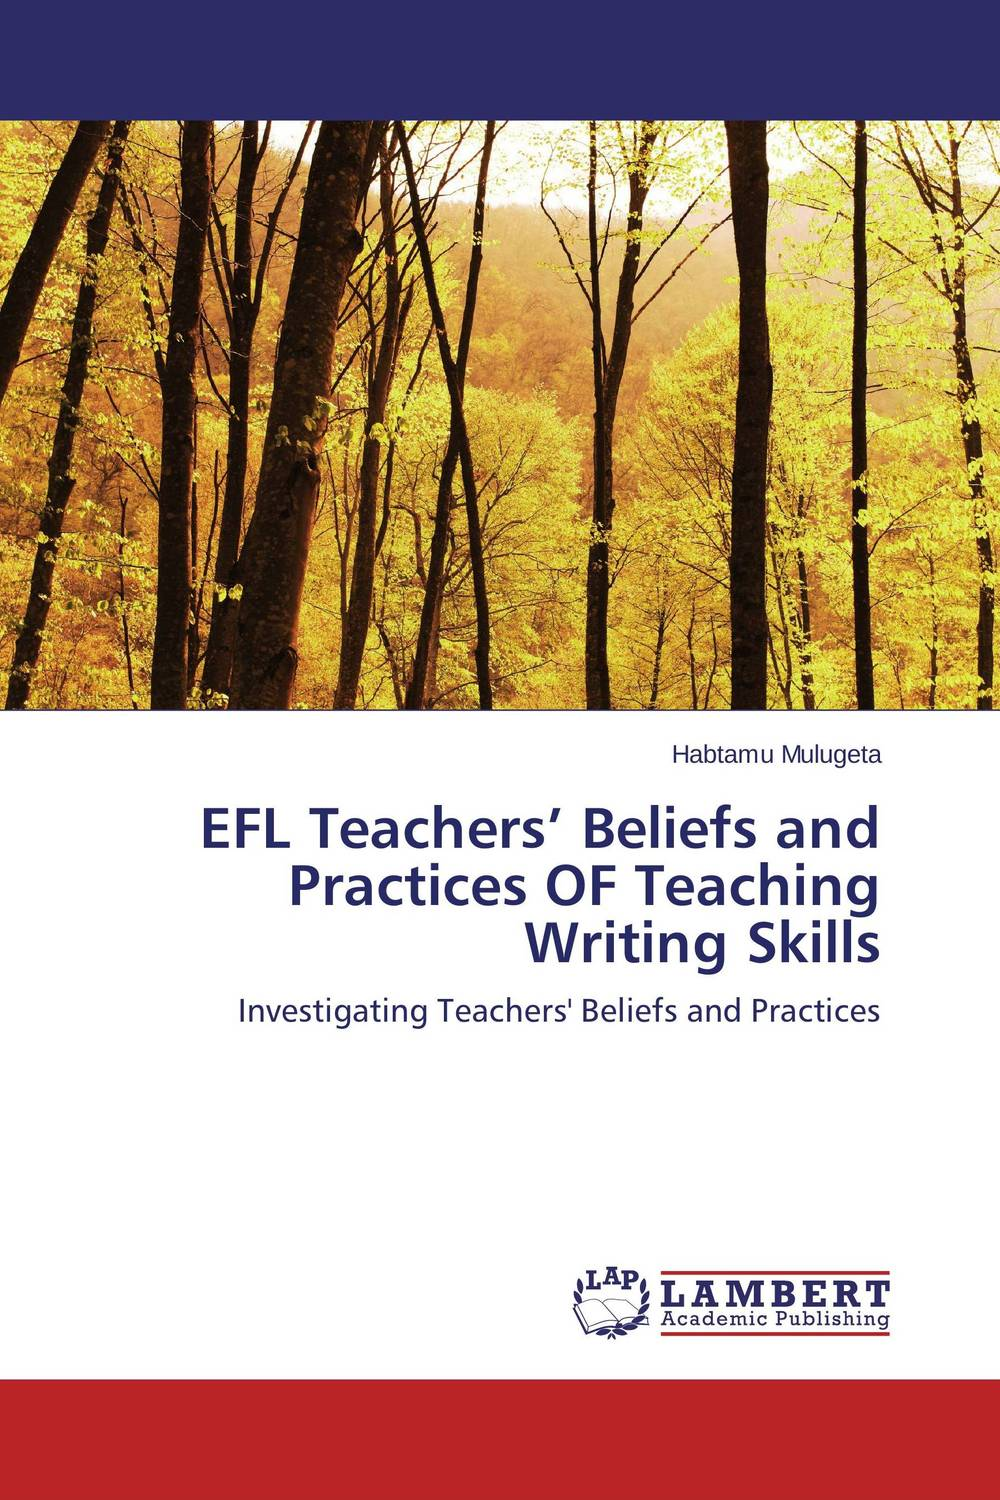 EFL Teachers' Beliefs and Practices OF Teaching Writing Skills found in brooklyn